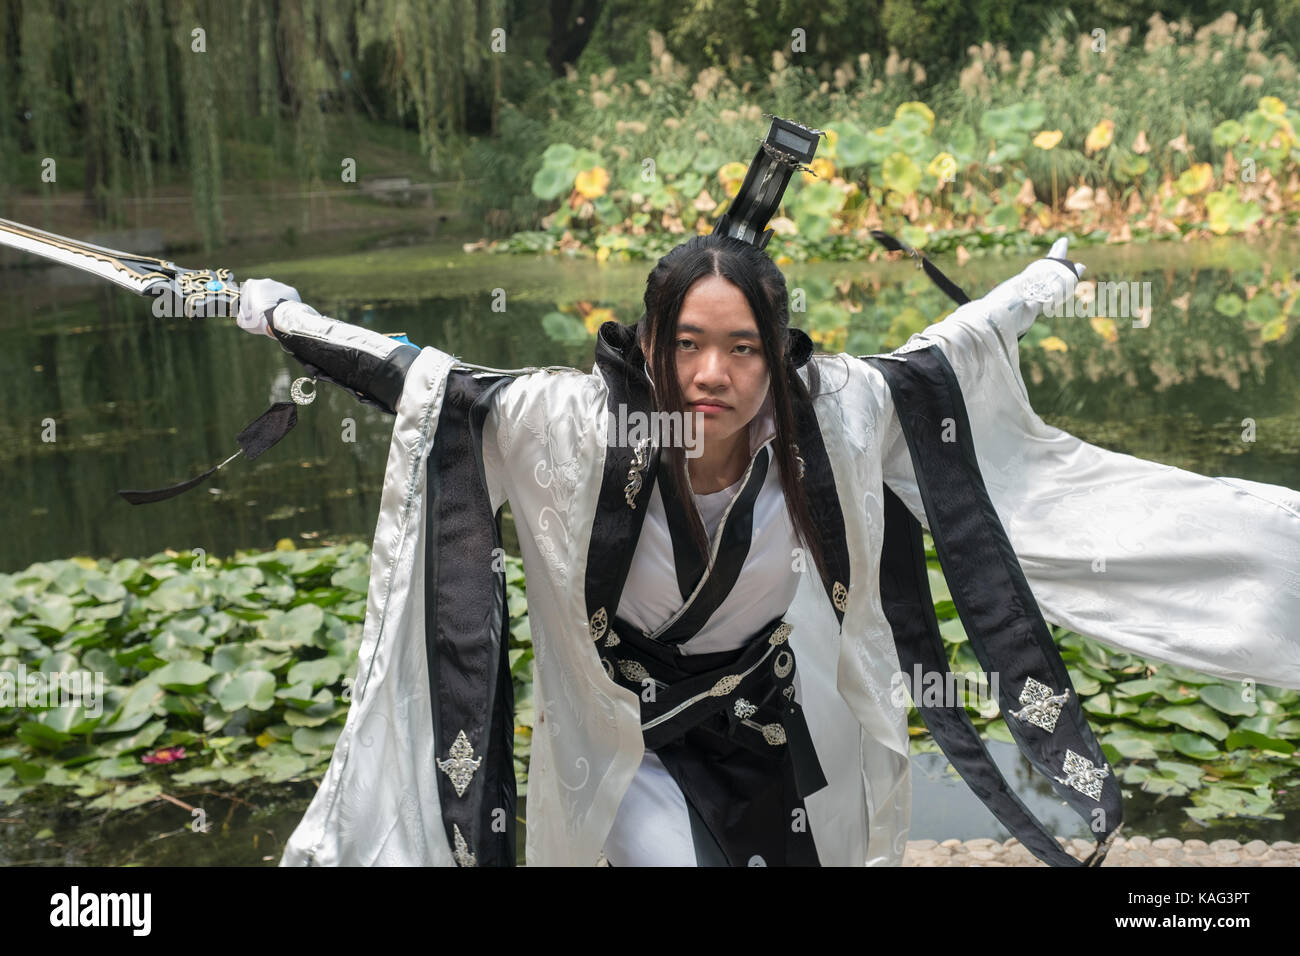 Chinese girl dresses as character from JX3 kingsoft games for cosplay photography in Beijing, China. - Stock Image